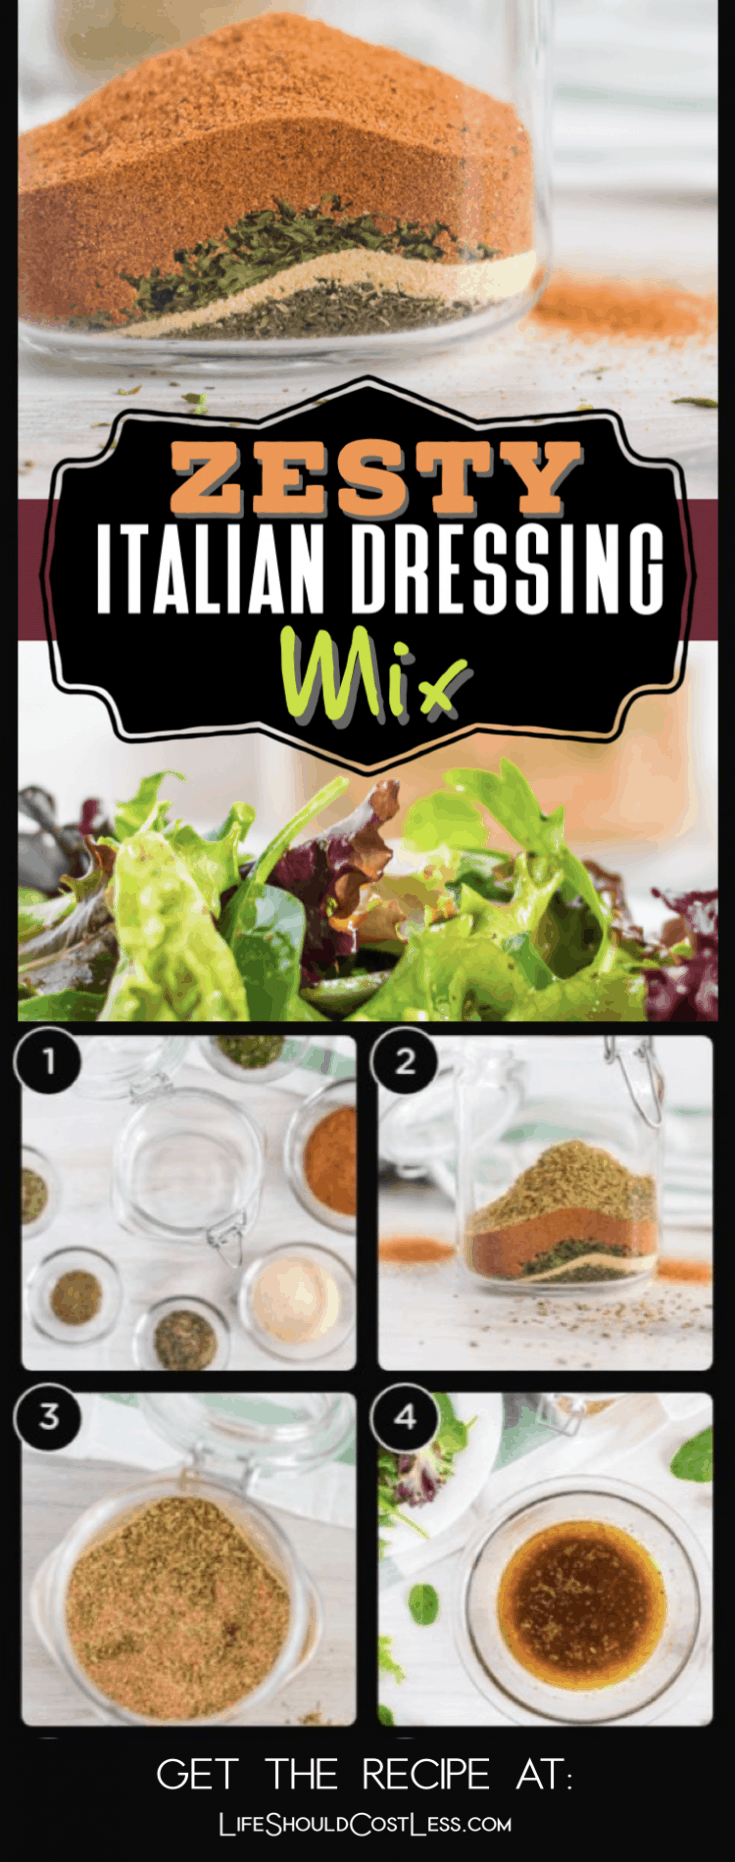 Using dry Zesty Italian Dressing Mix is a great way to spice up your various food dishes or can be used as a dry rub for meat. Or, easily mix it into a tangy dressing. Learn how to make the BEST Zesty Italian Dressing Mix with this simple bulk recipe. Plus it has directions to make the dressing as well.